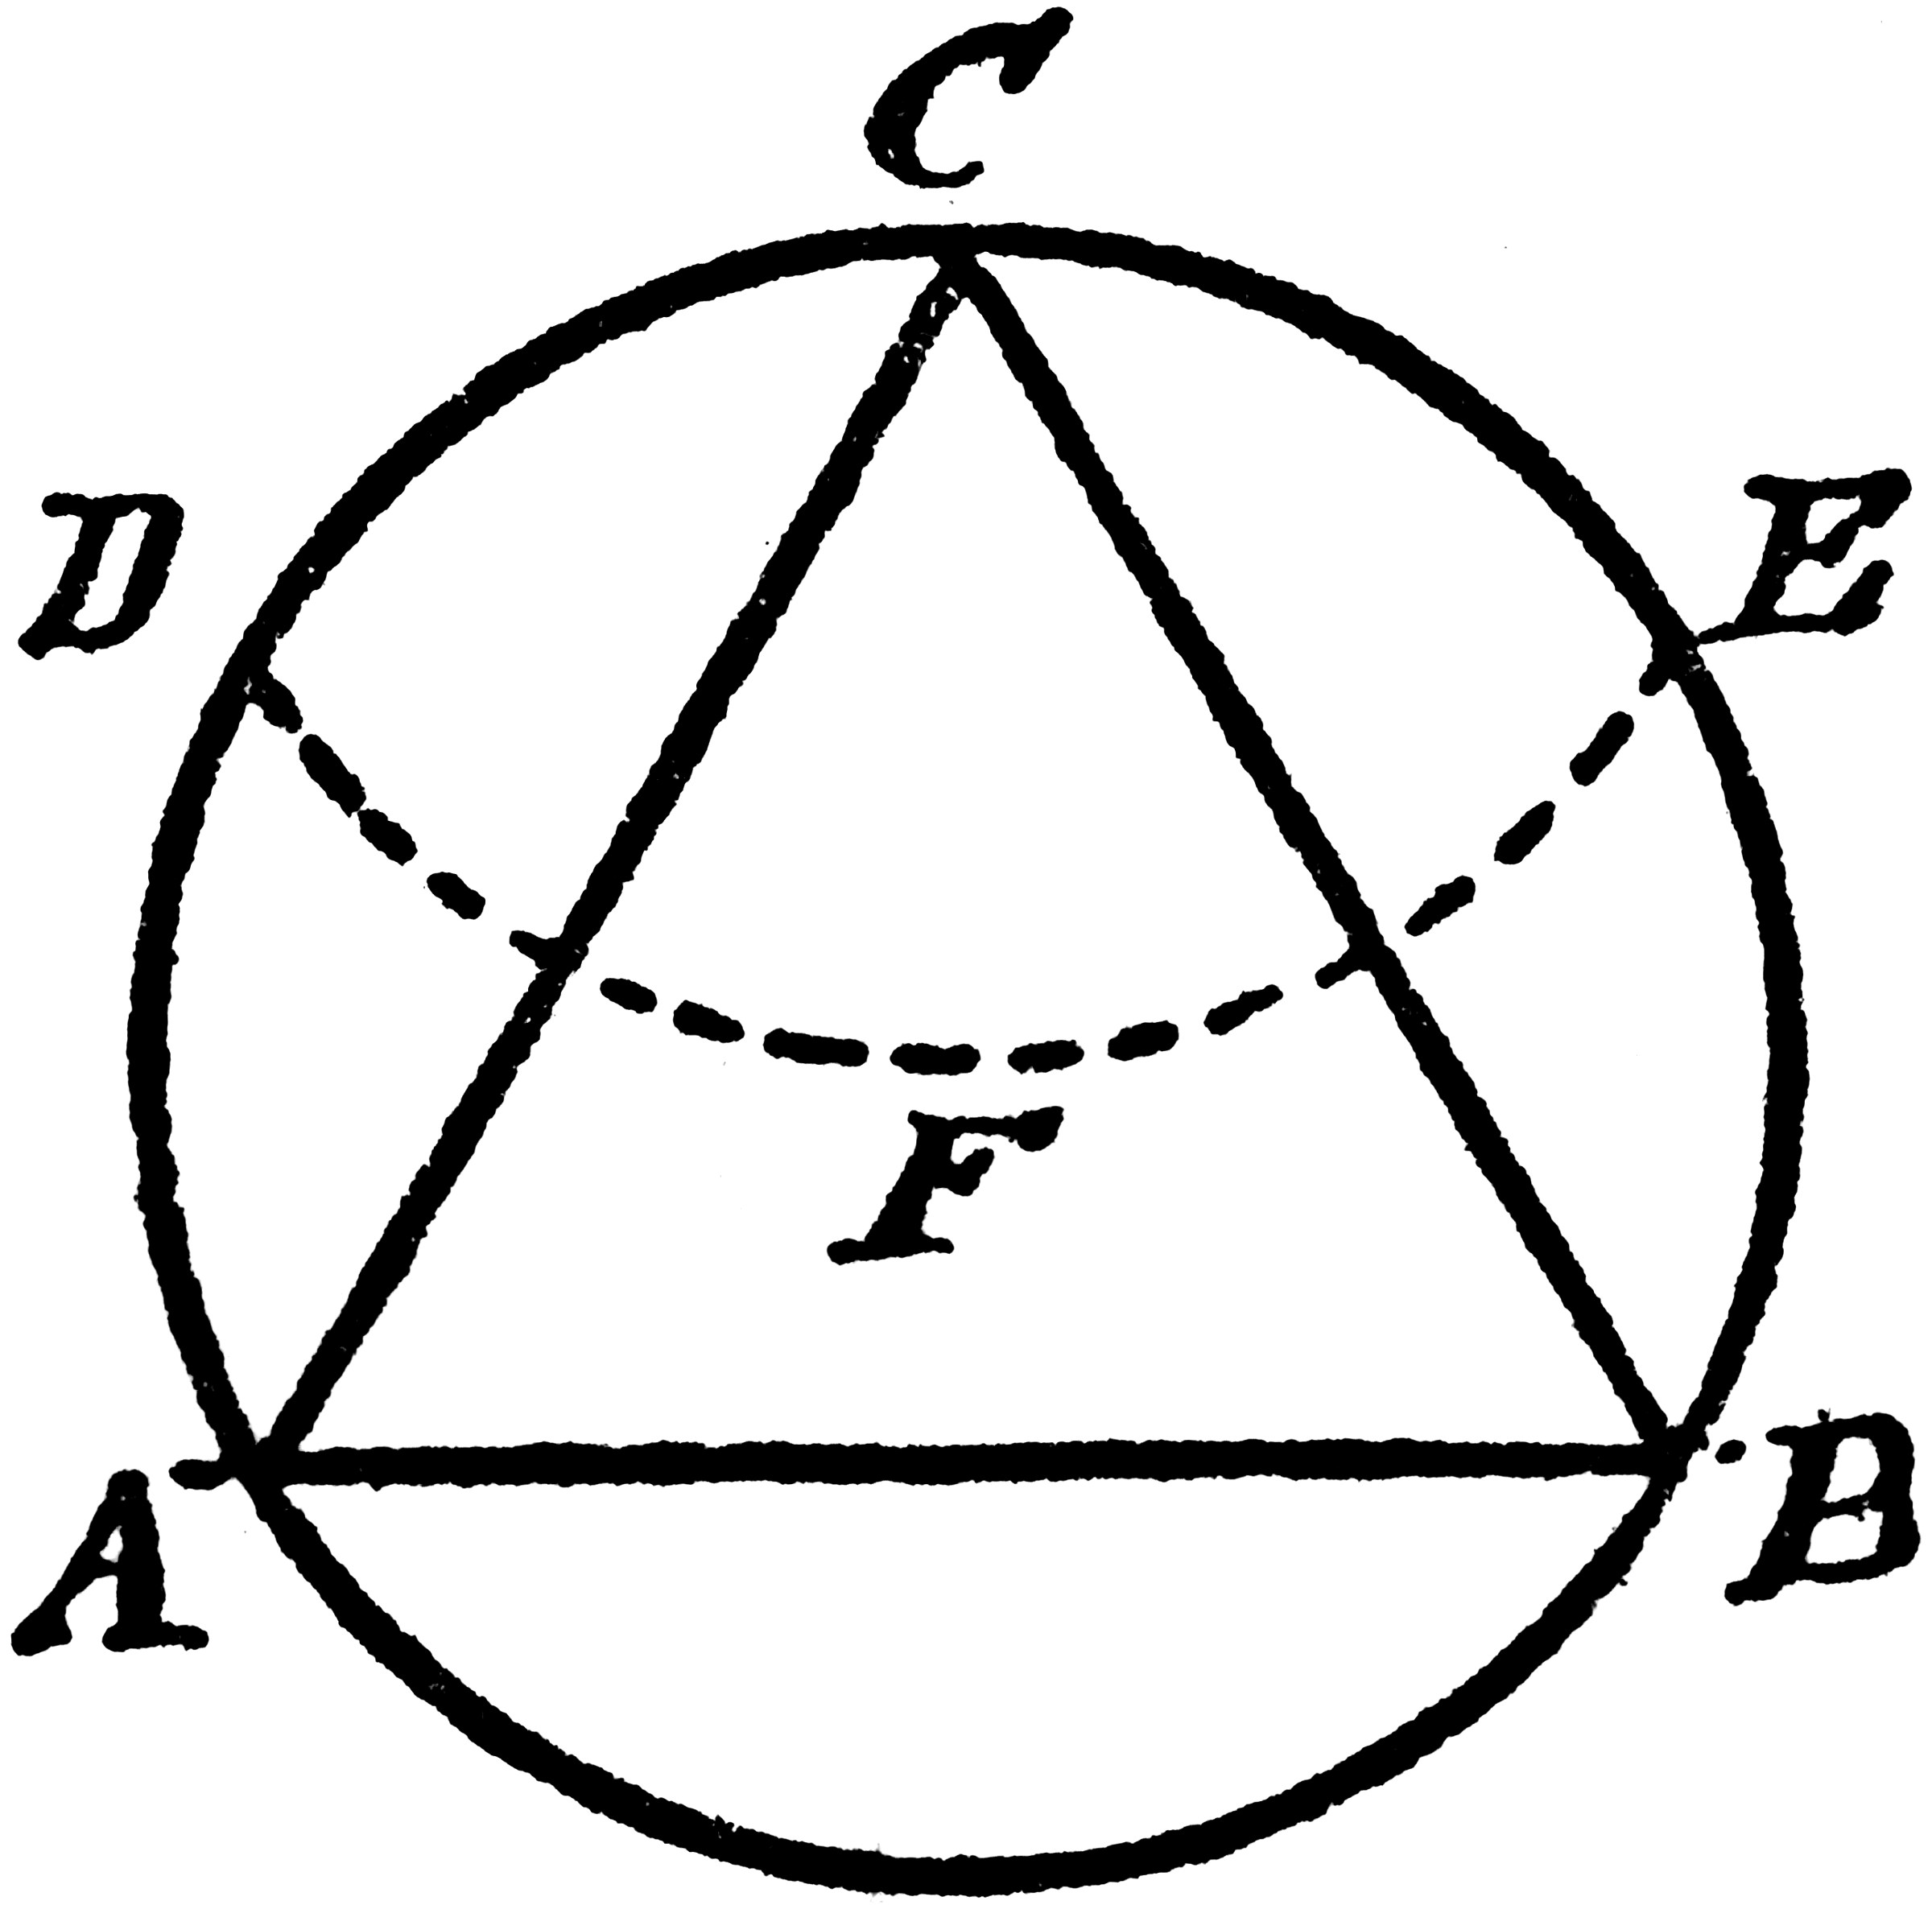 Construction Of An Equilateral Triangle Inscribed In A